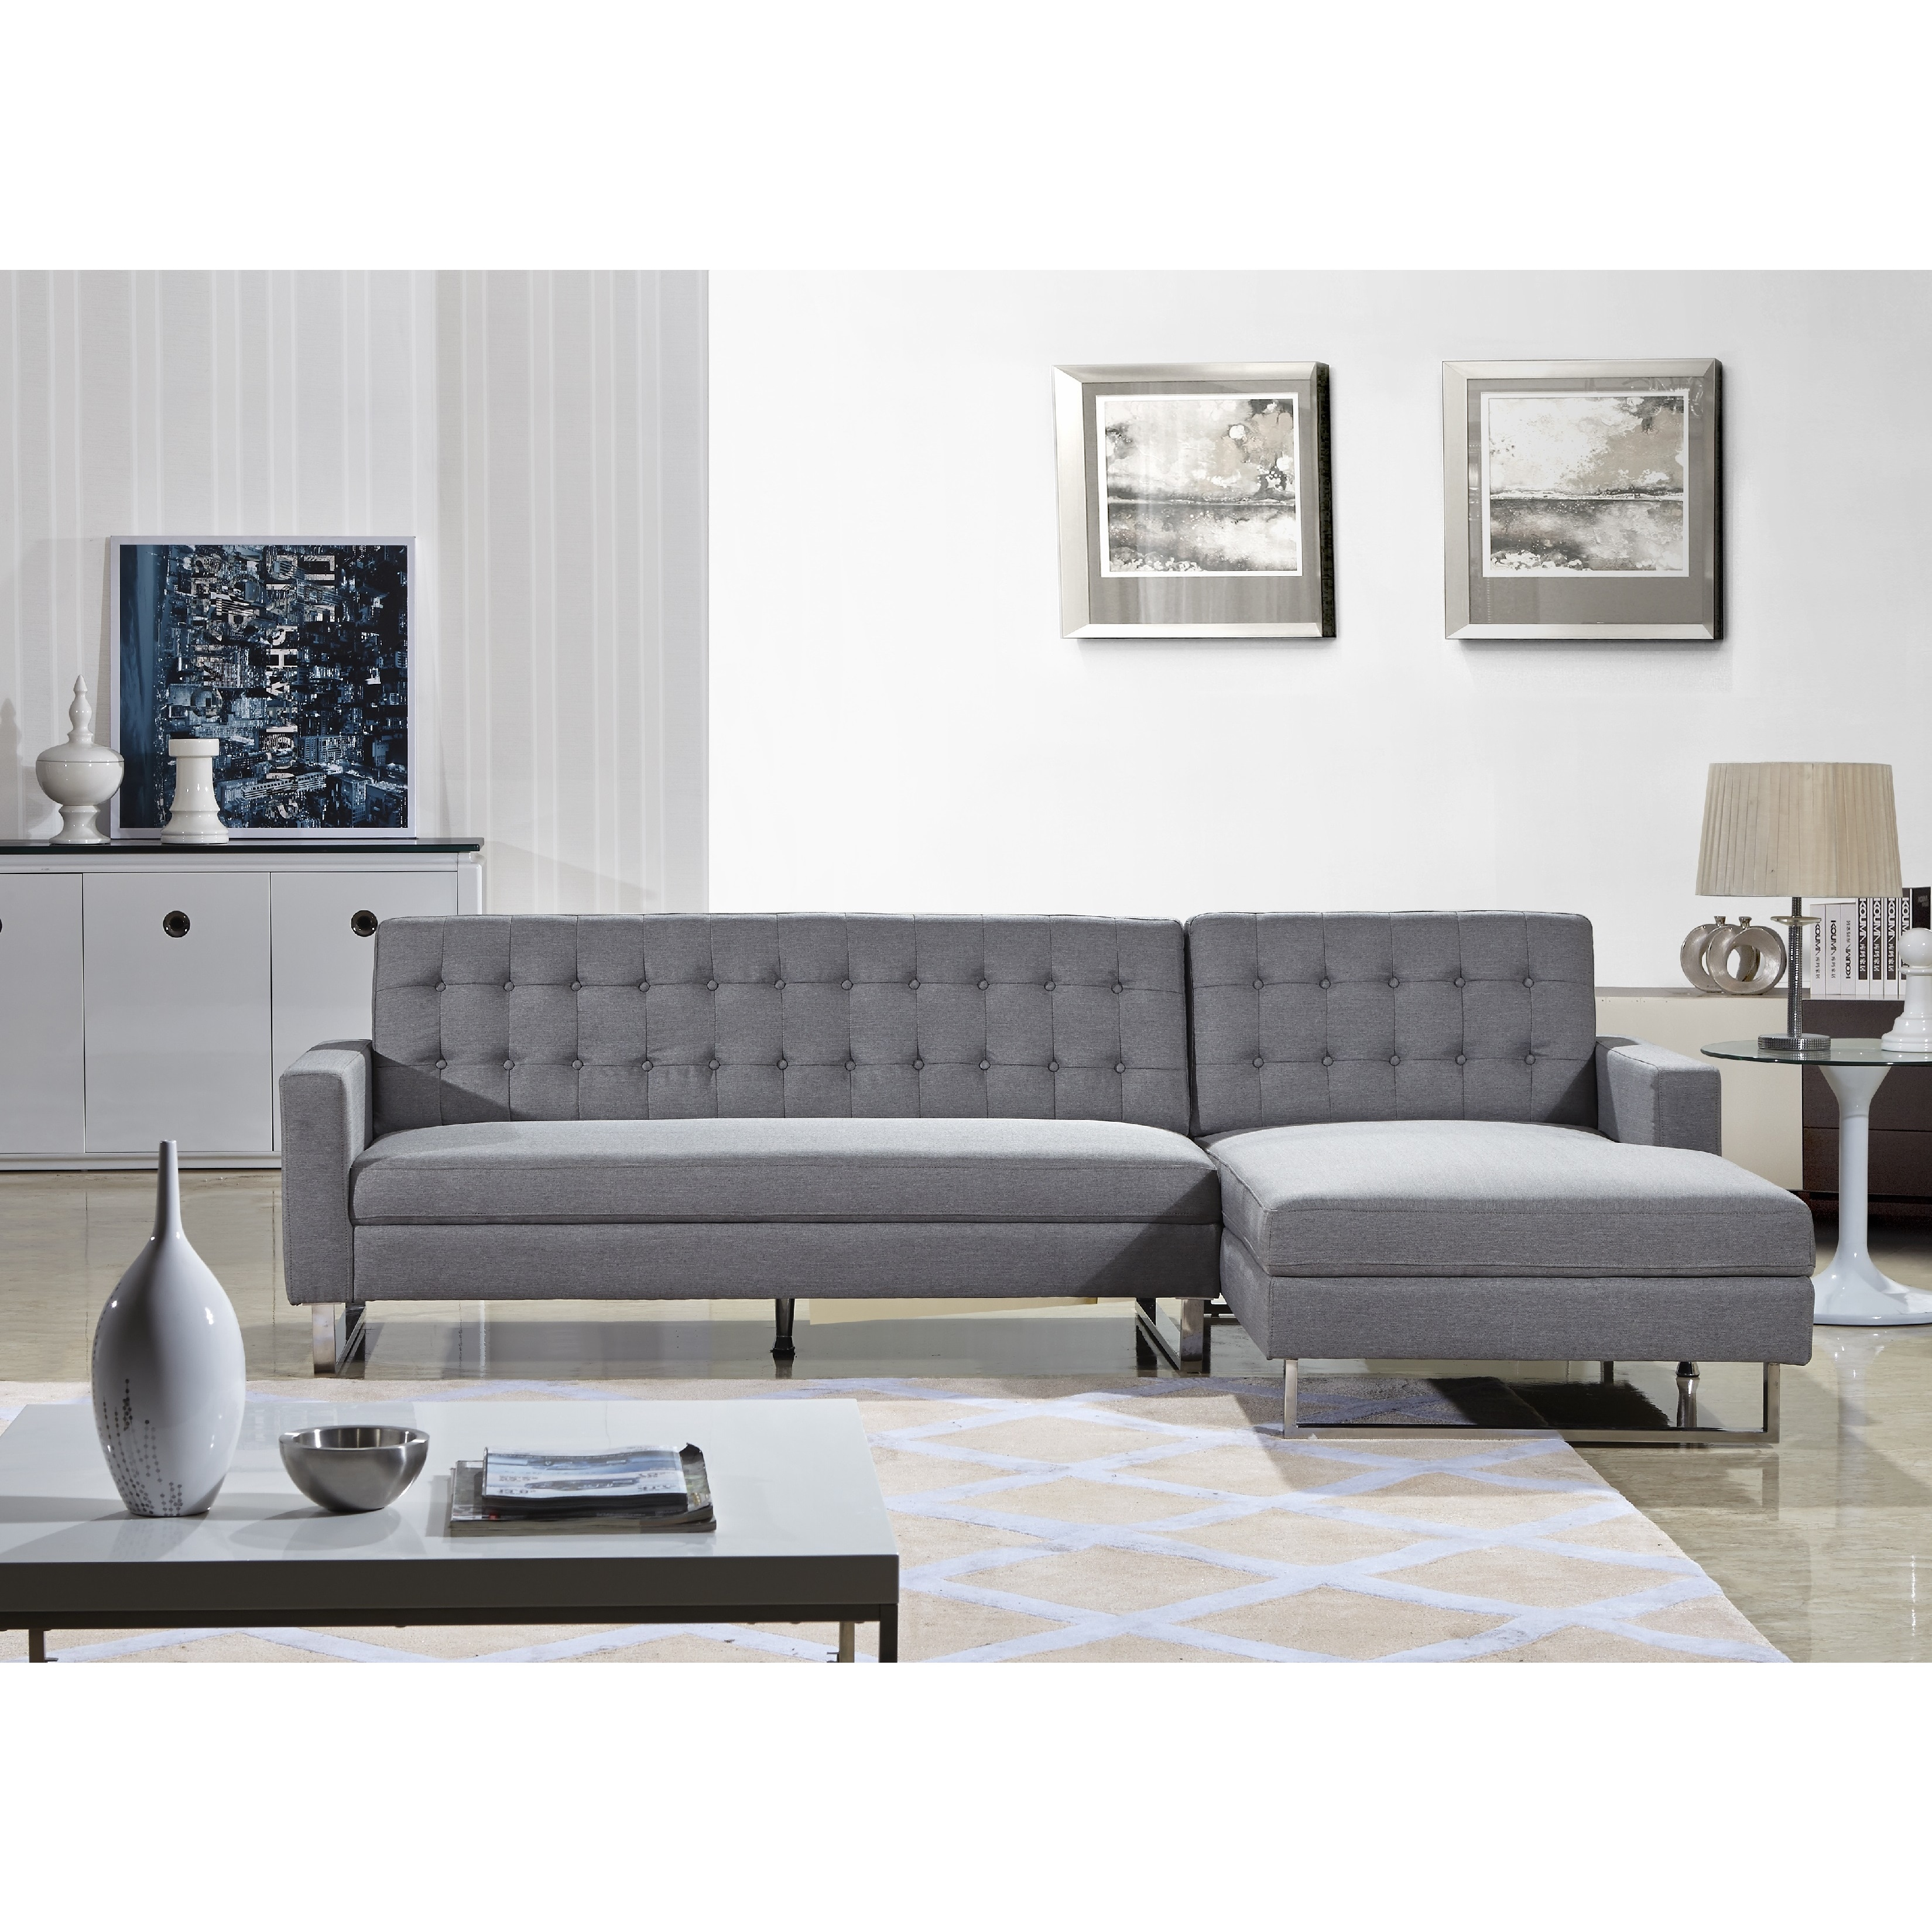 by place dune jessa number right sofa item products casual ashley with chaise signature sectional design